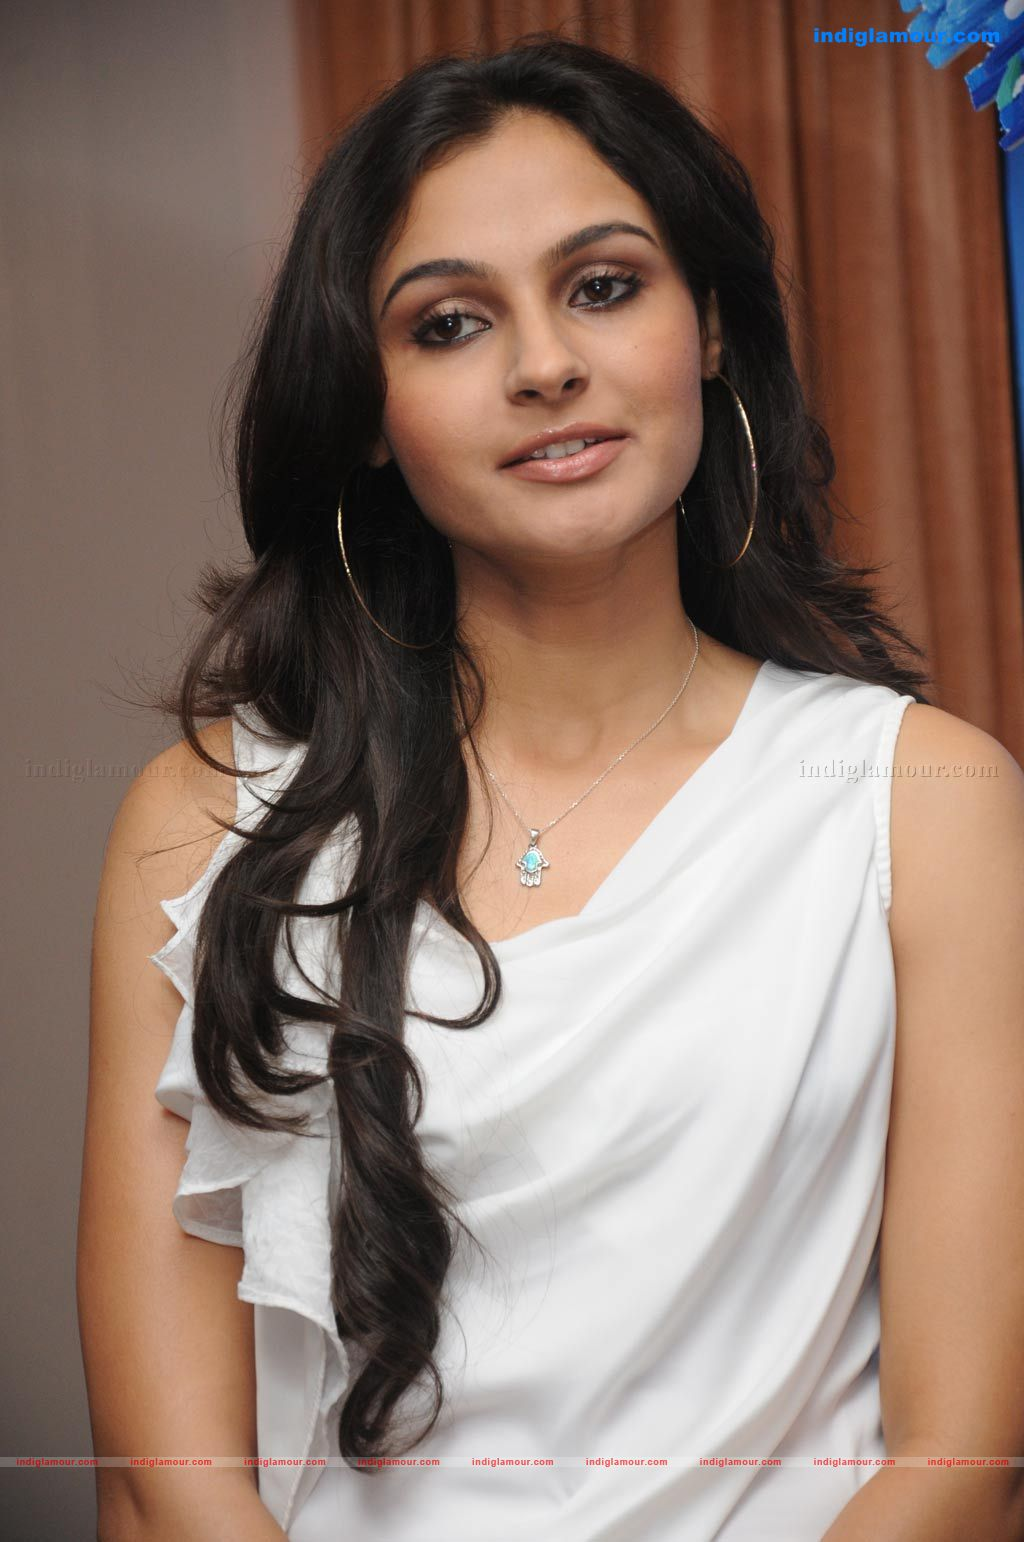 Andriya Hot Images andrea actress photos, stills, images, pictures and hot pics